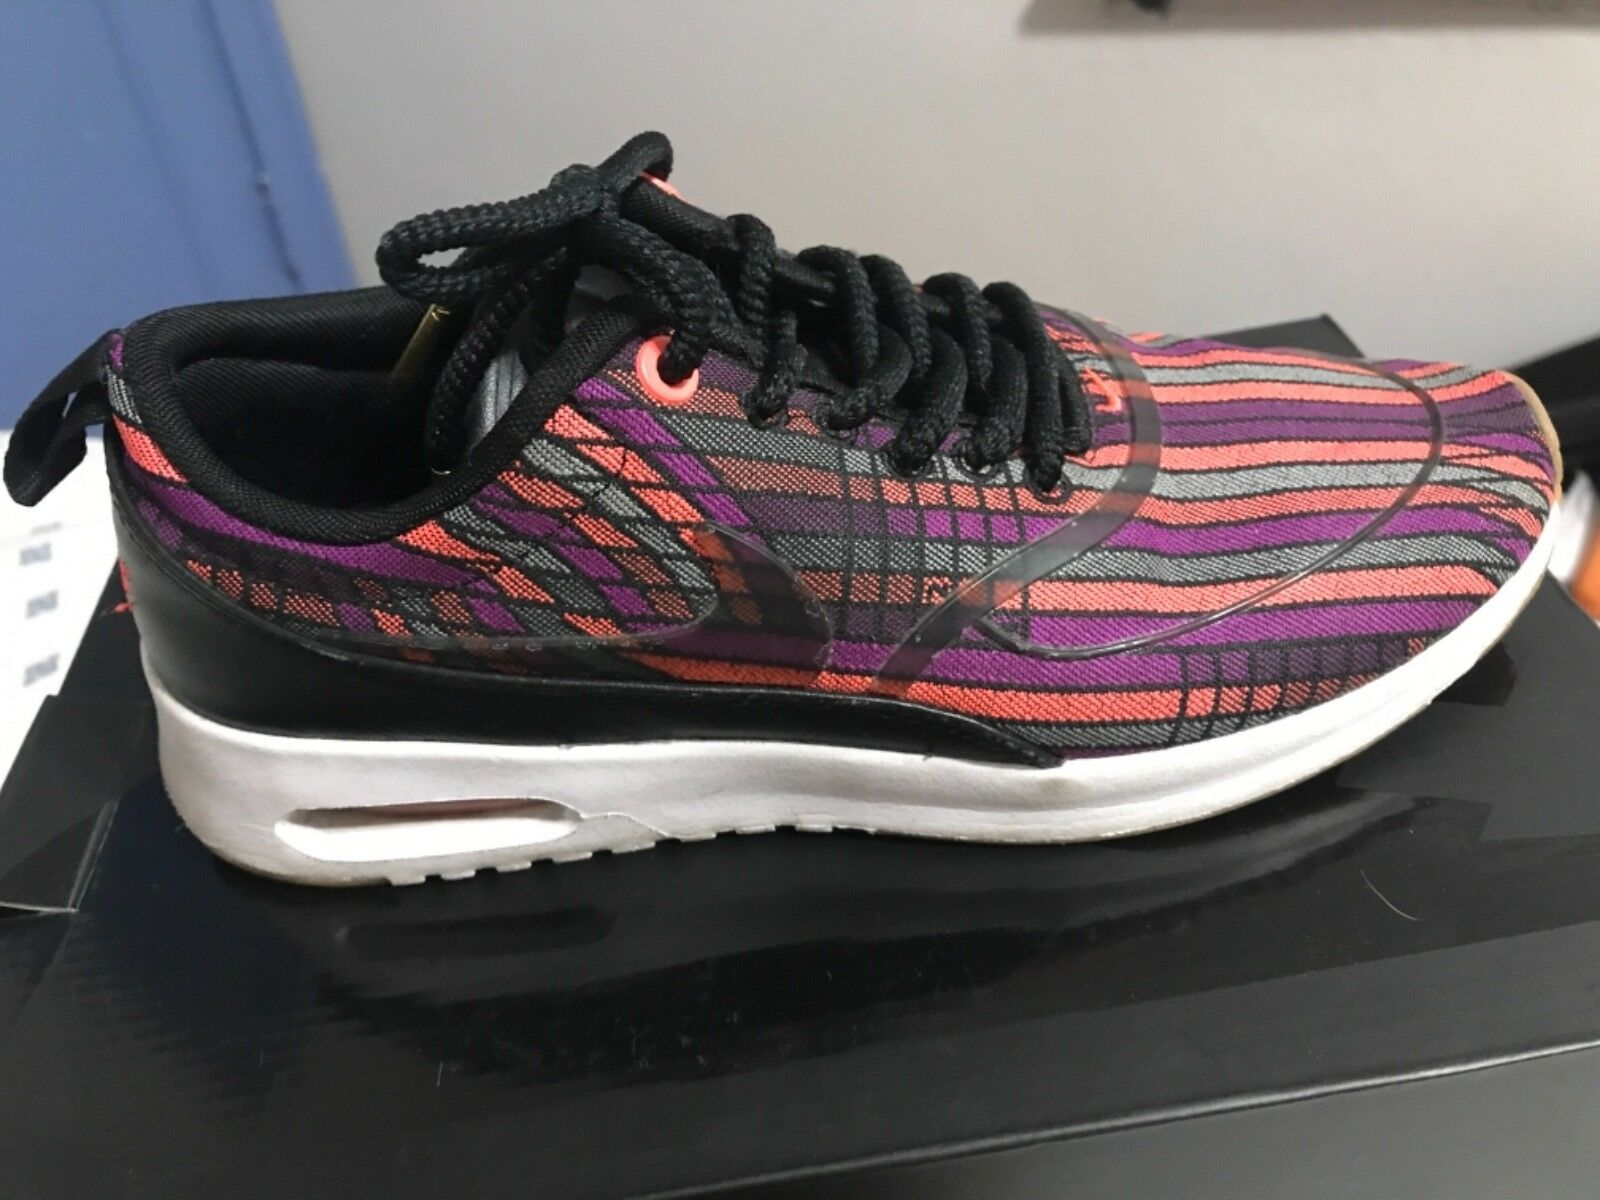 Nike Air Max Max Max Thea Ultra Power Jacquard colorways Women Size 6.5 885201 001 011ce0